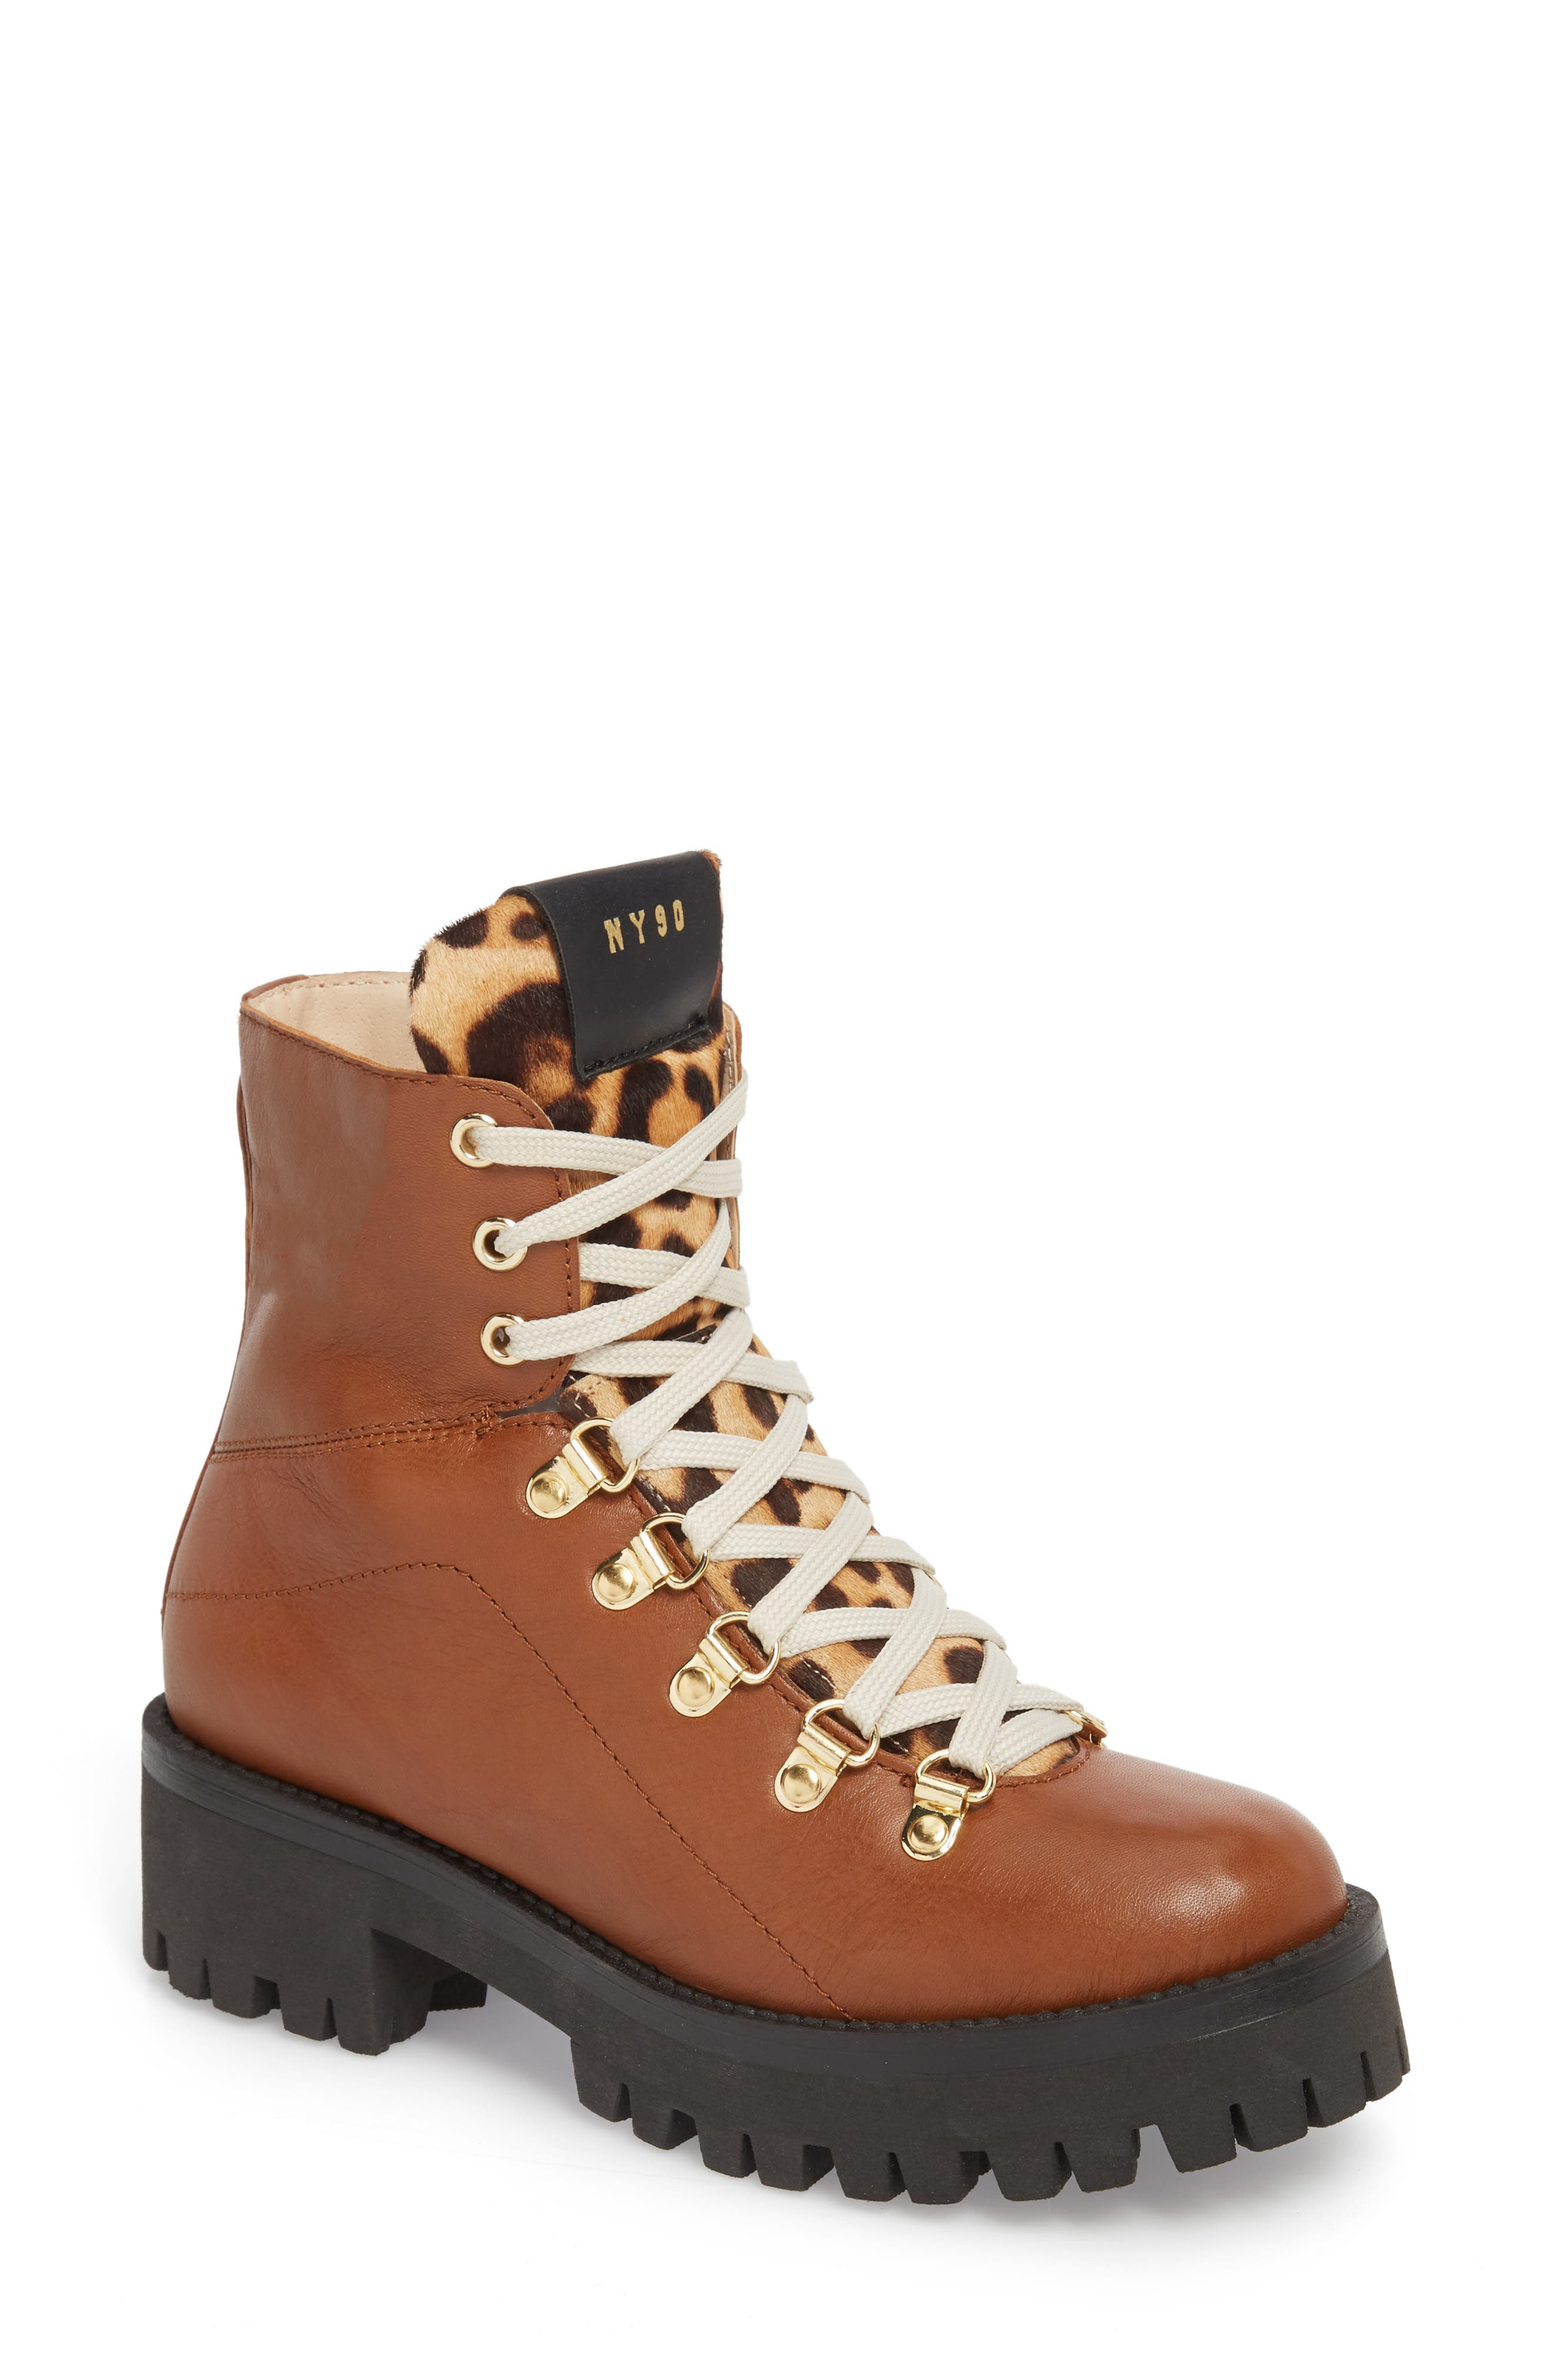 STEVE MADDEN Boom Hiker Boot with Genuine Calf Hair, Main, color, 200